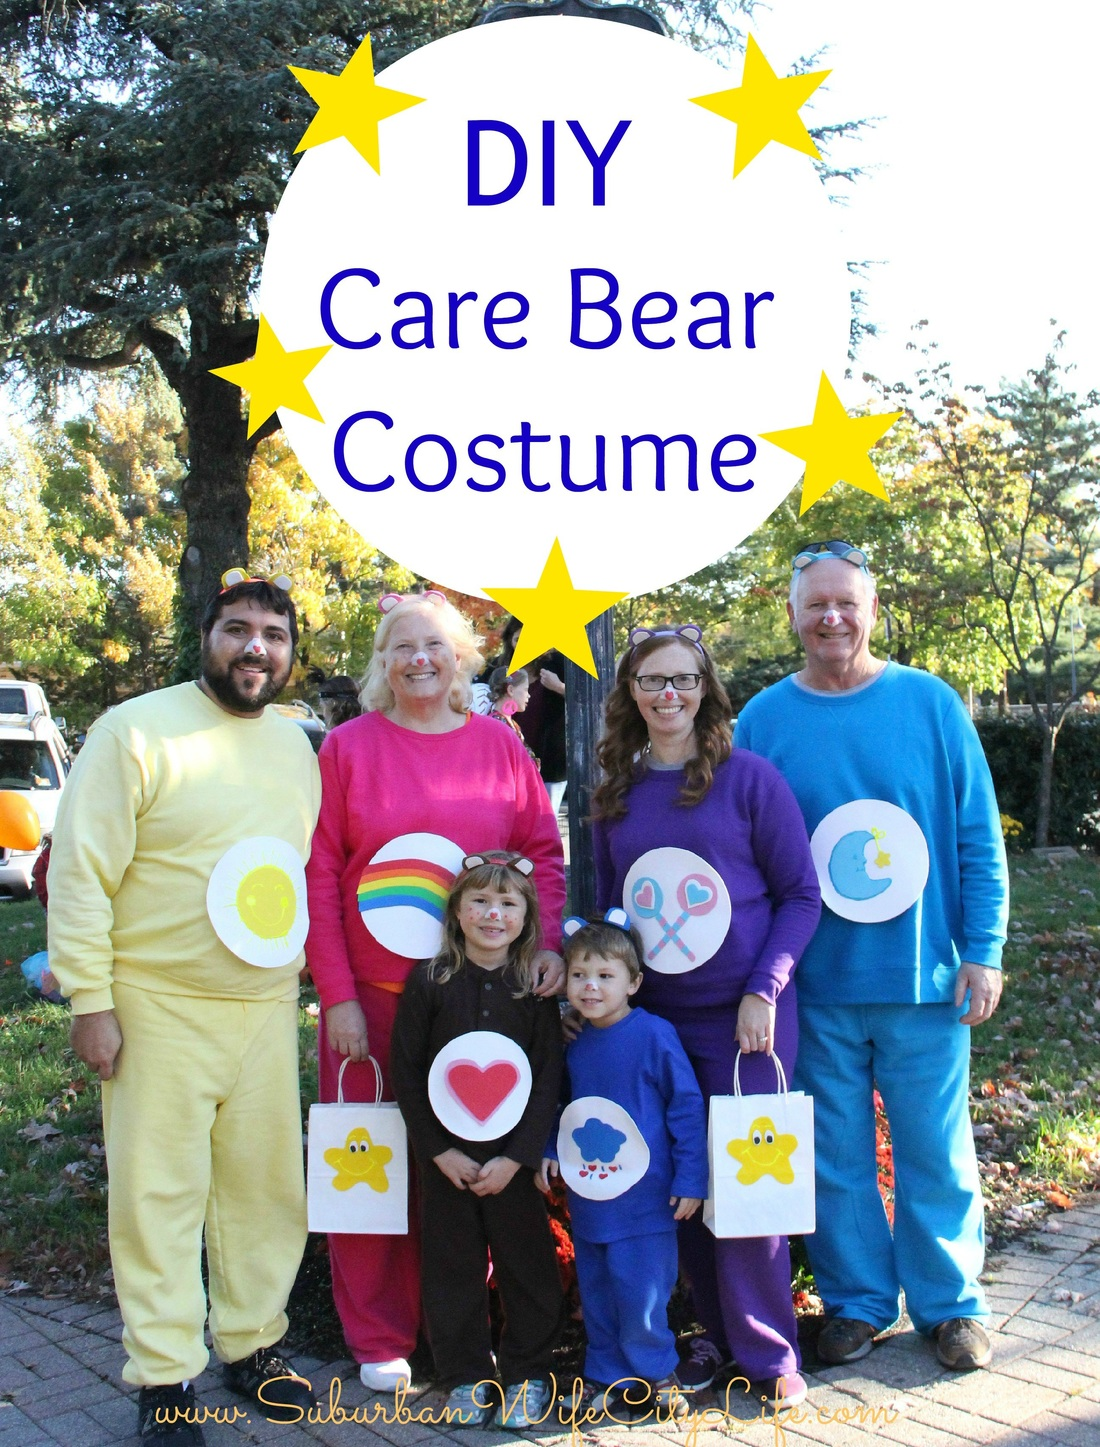 Alicia Gibbs: 12 DIY Family Themed Costumes - Care Bears